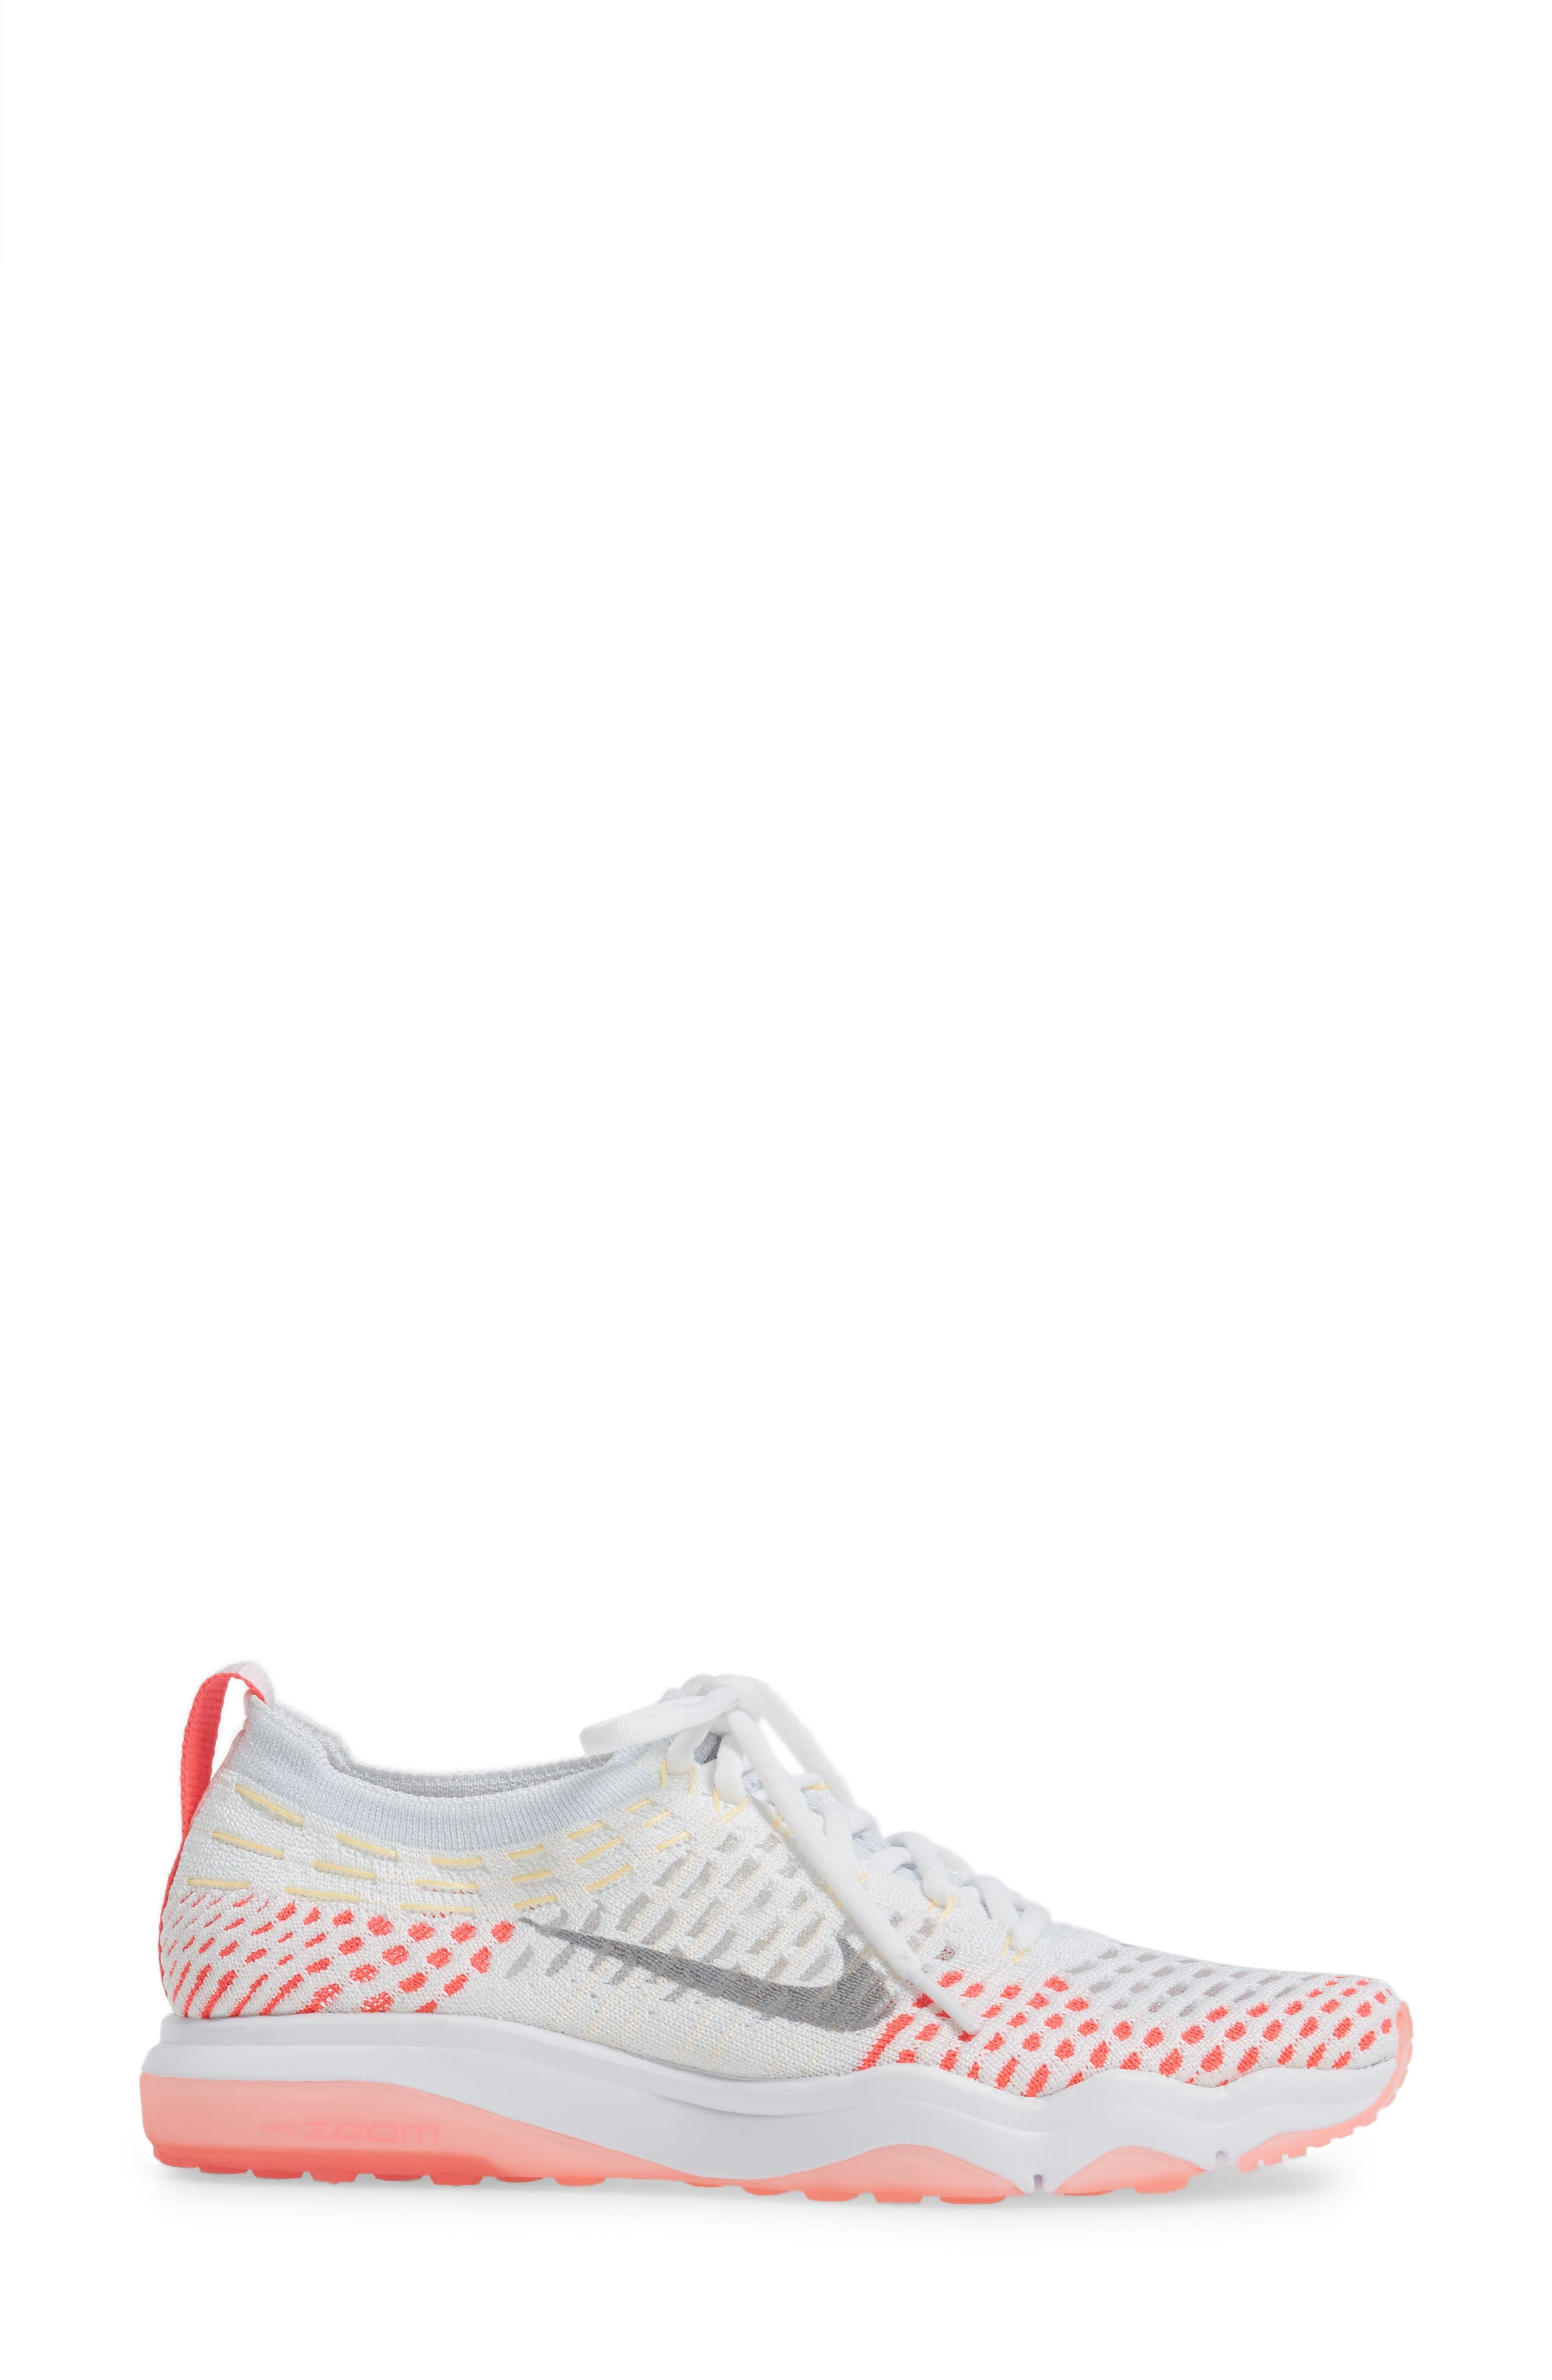 Air Zoom Fearless Flyknit Training Shoe,                             Alternate thumbnail 33, color,